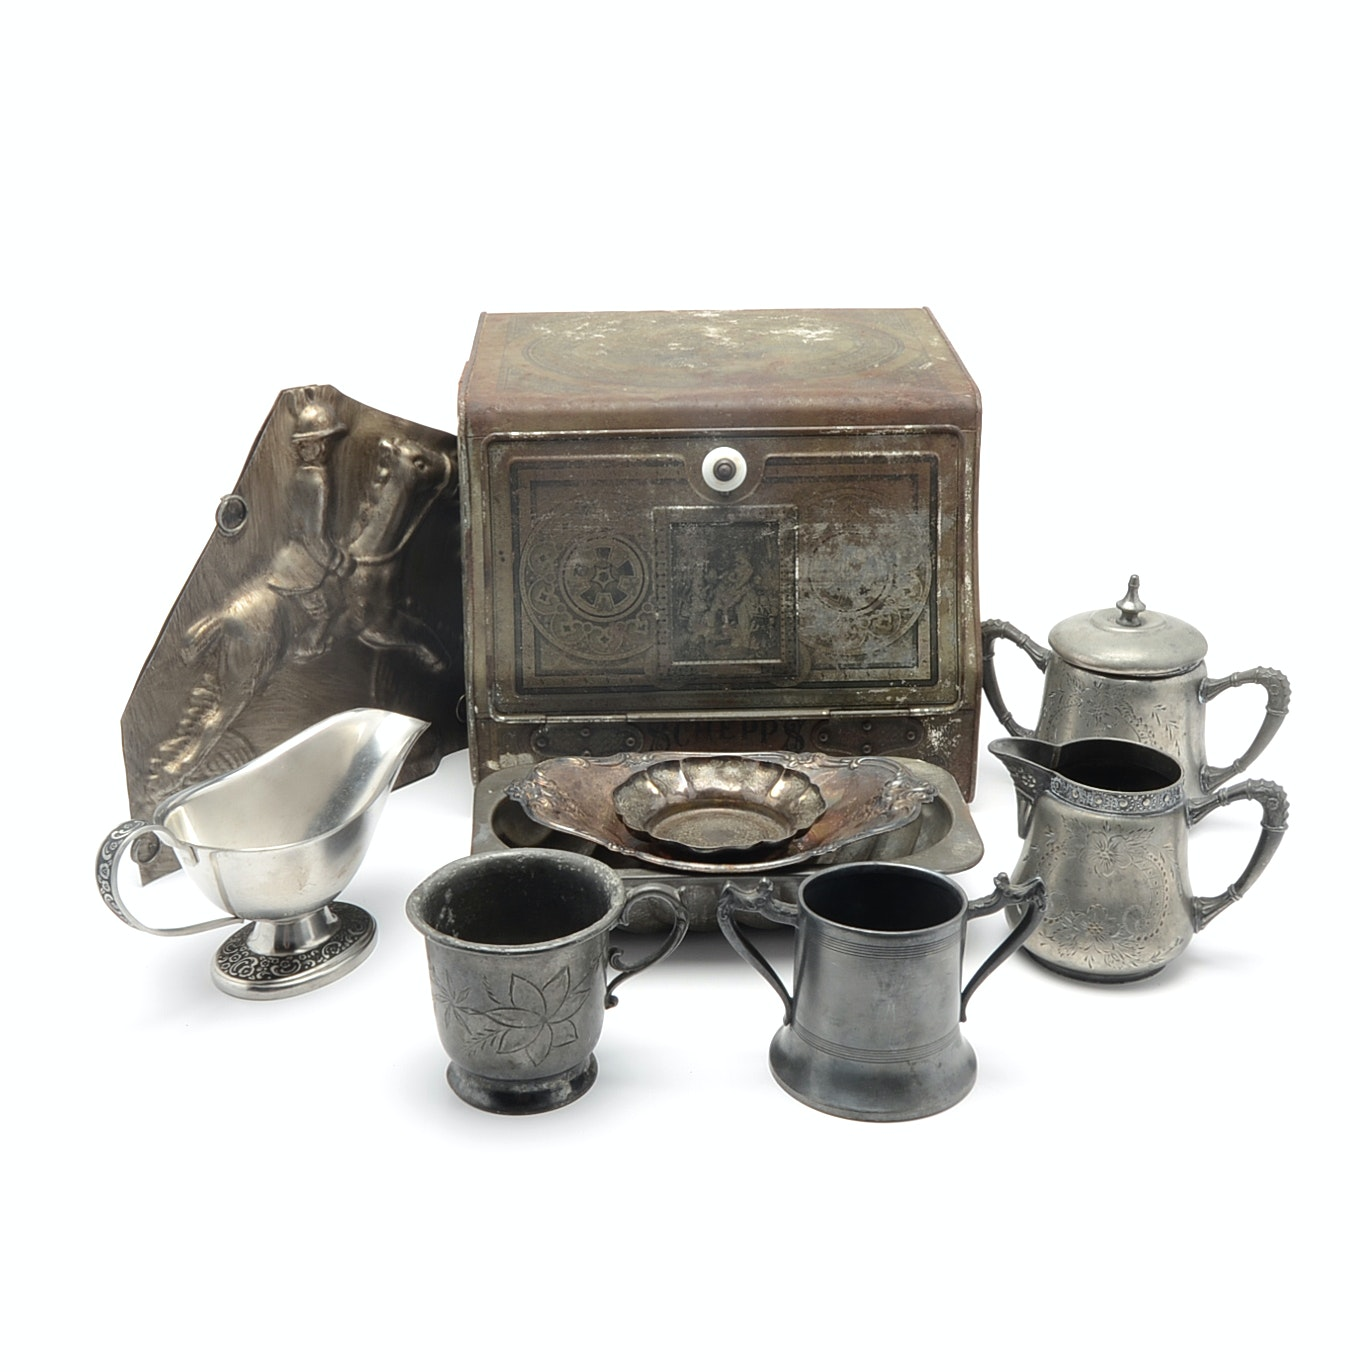 Collection of Vintage Metalware Including a Schepps Cake Box